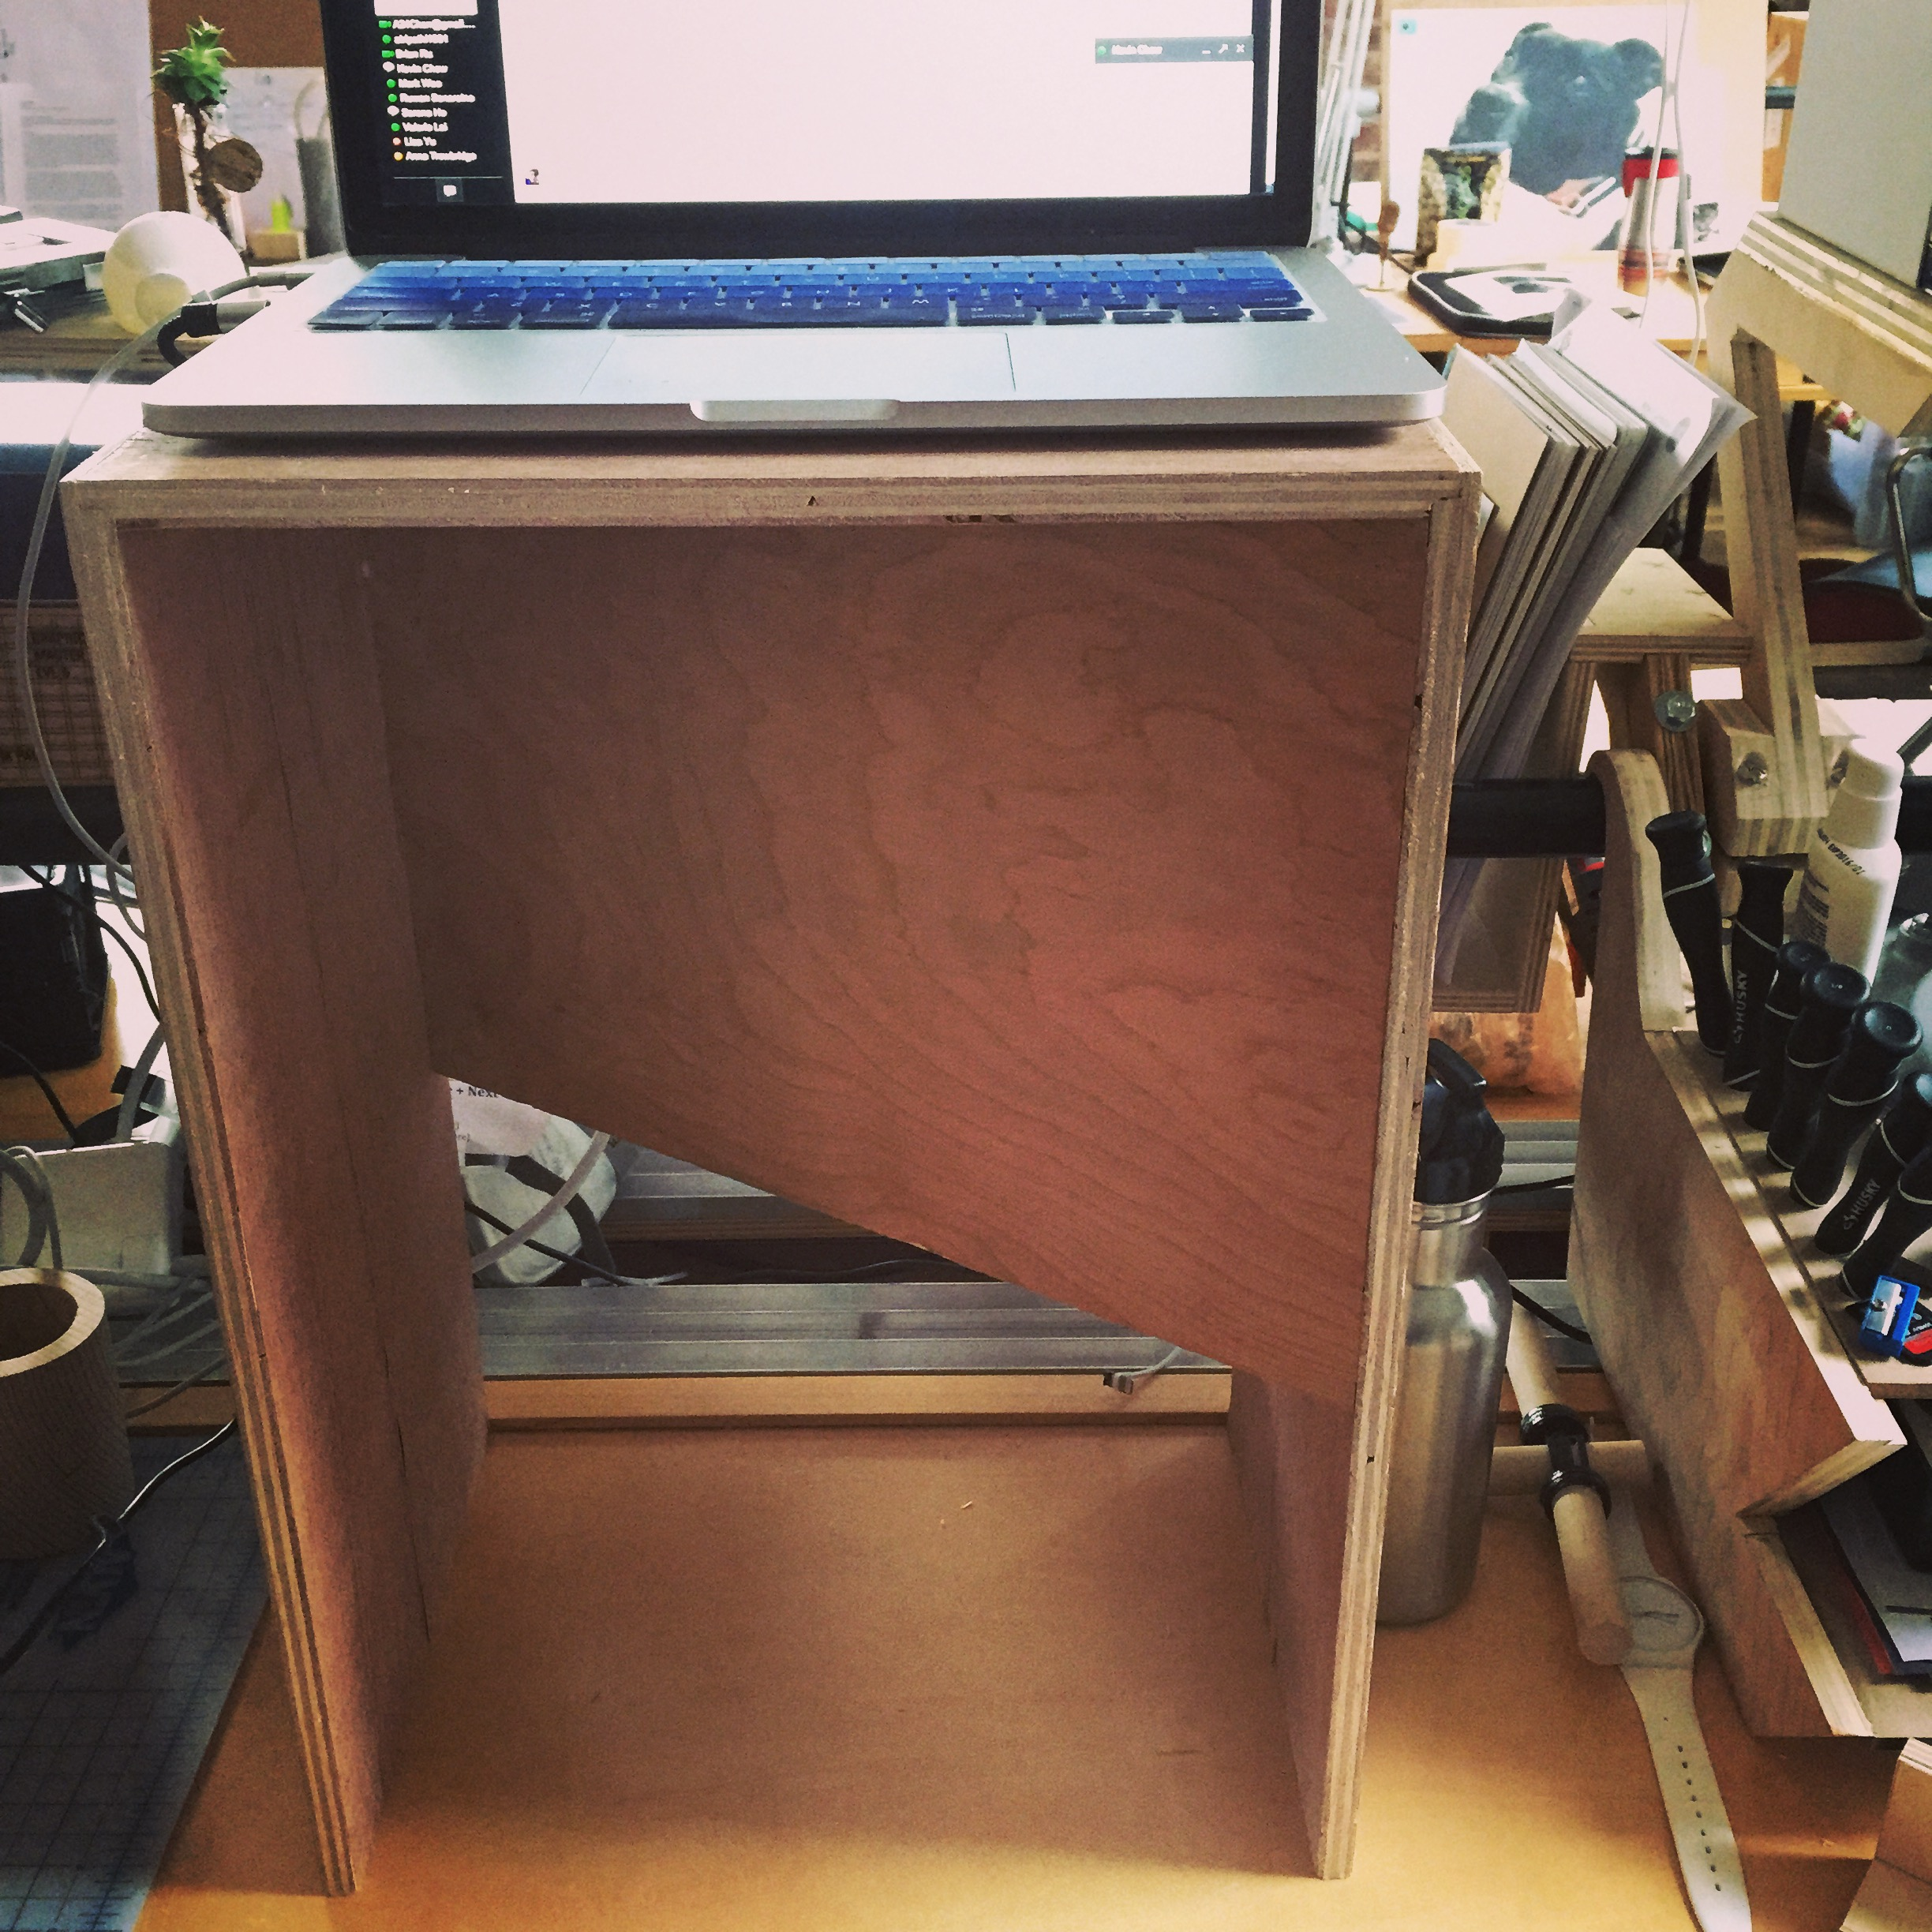 Week 2: Another  Donald Judd  inspired work. I used the design for one of his iconic chairs and converted it into a portable standing desk for my workspace at Products of Design.